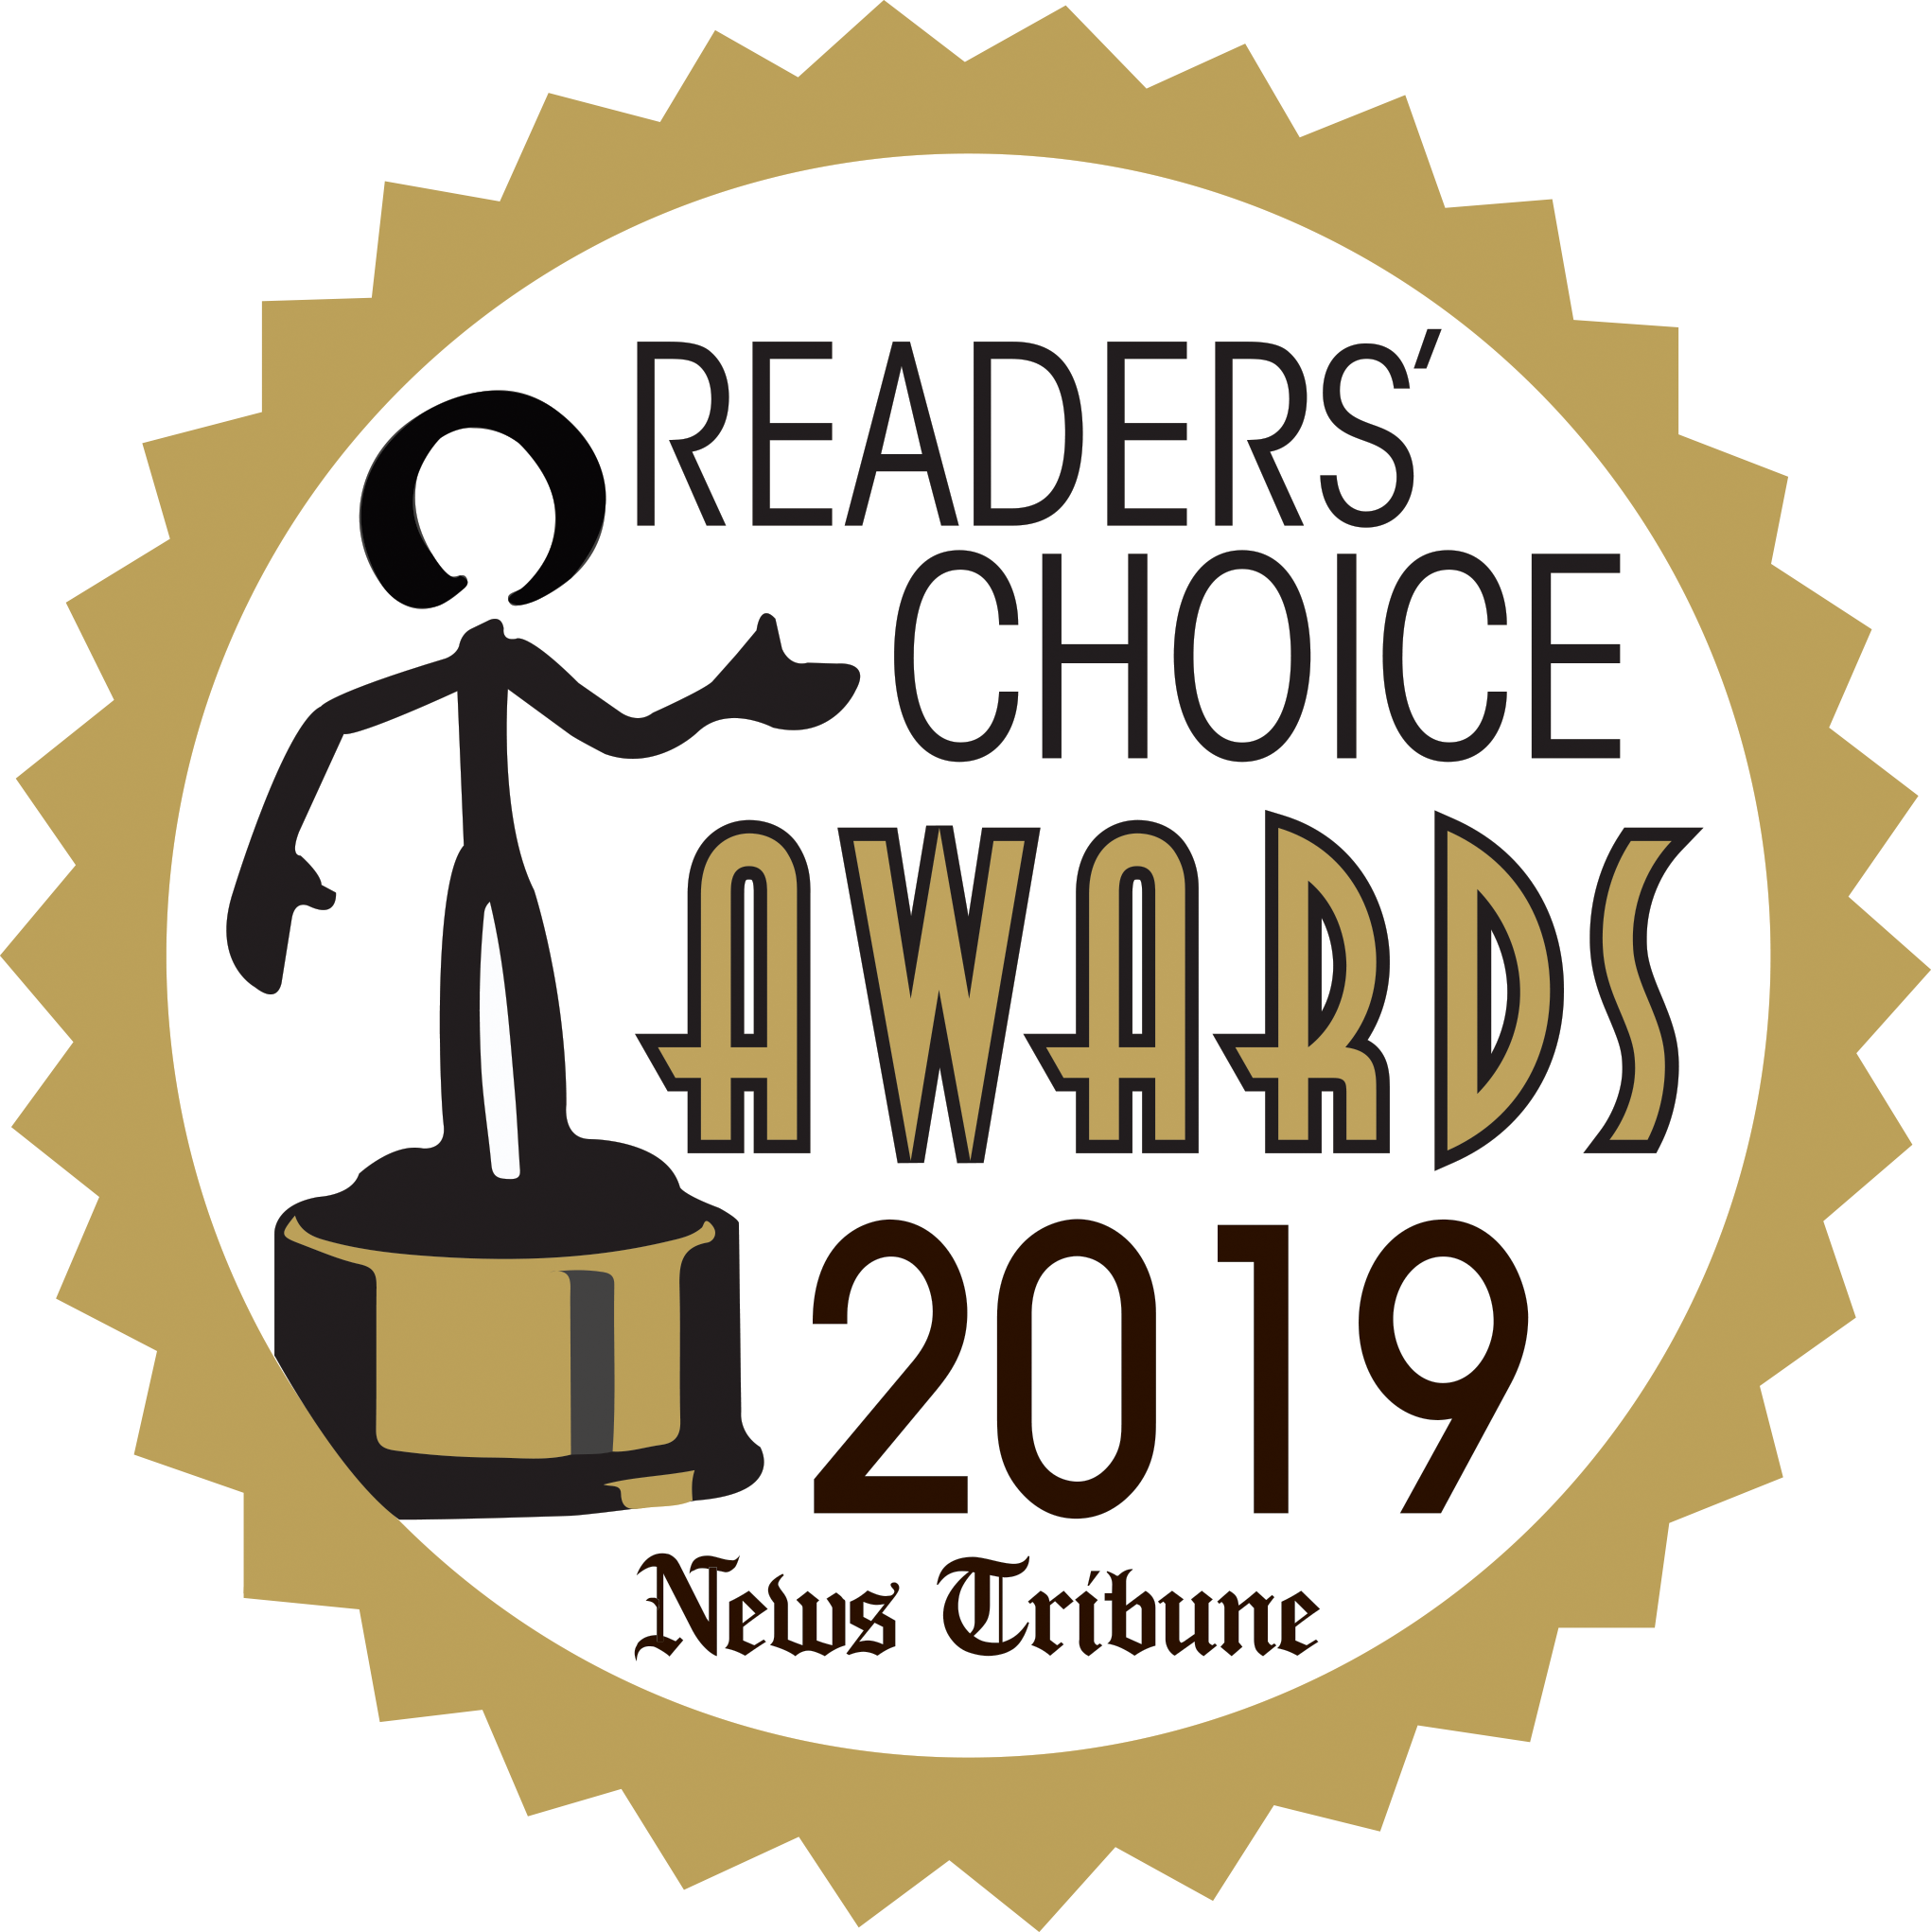 Reader's Choice logo 2019.png